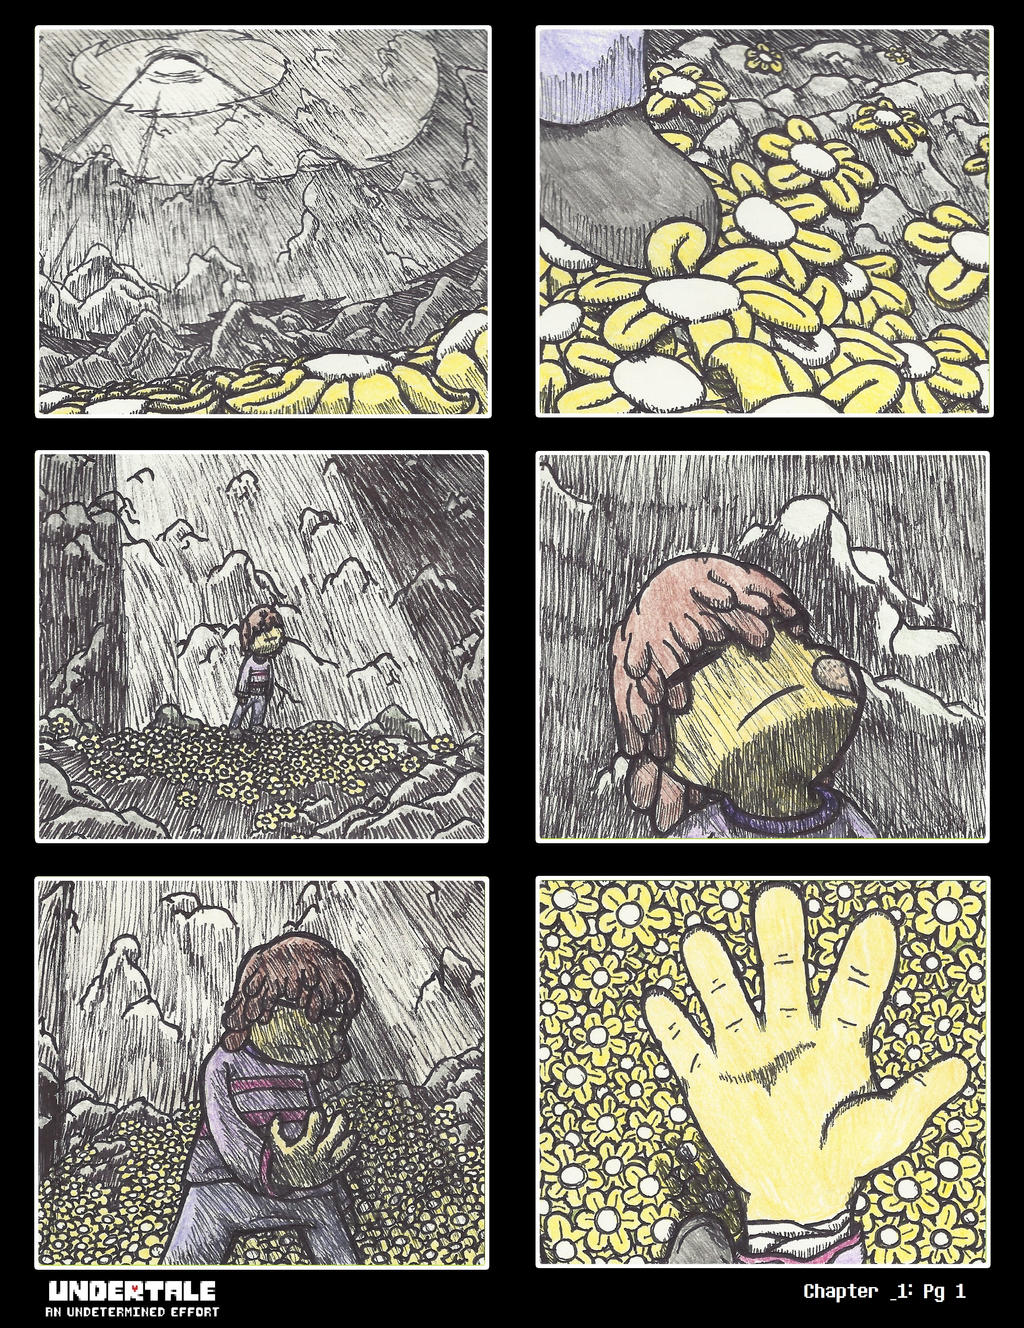 undertale aue chp 1 page 1 by notfritz on deviantart